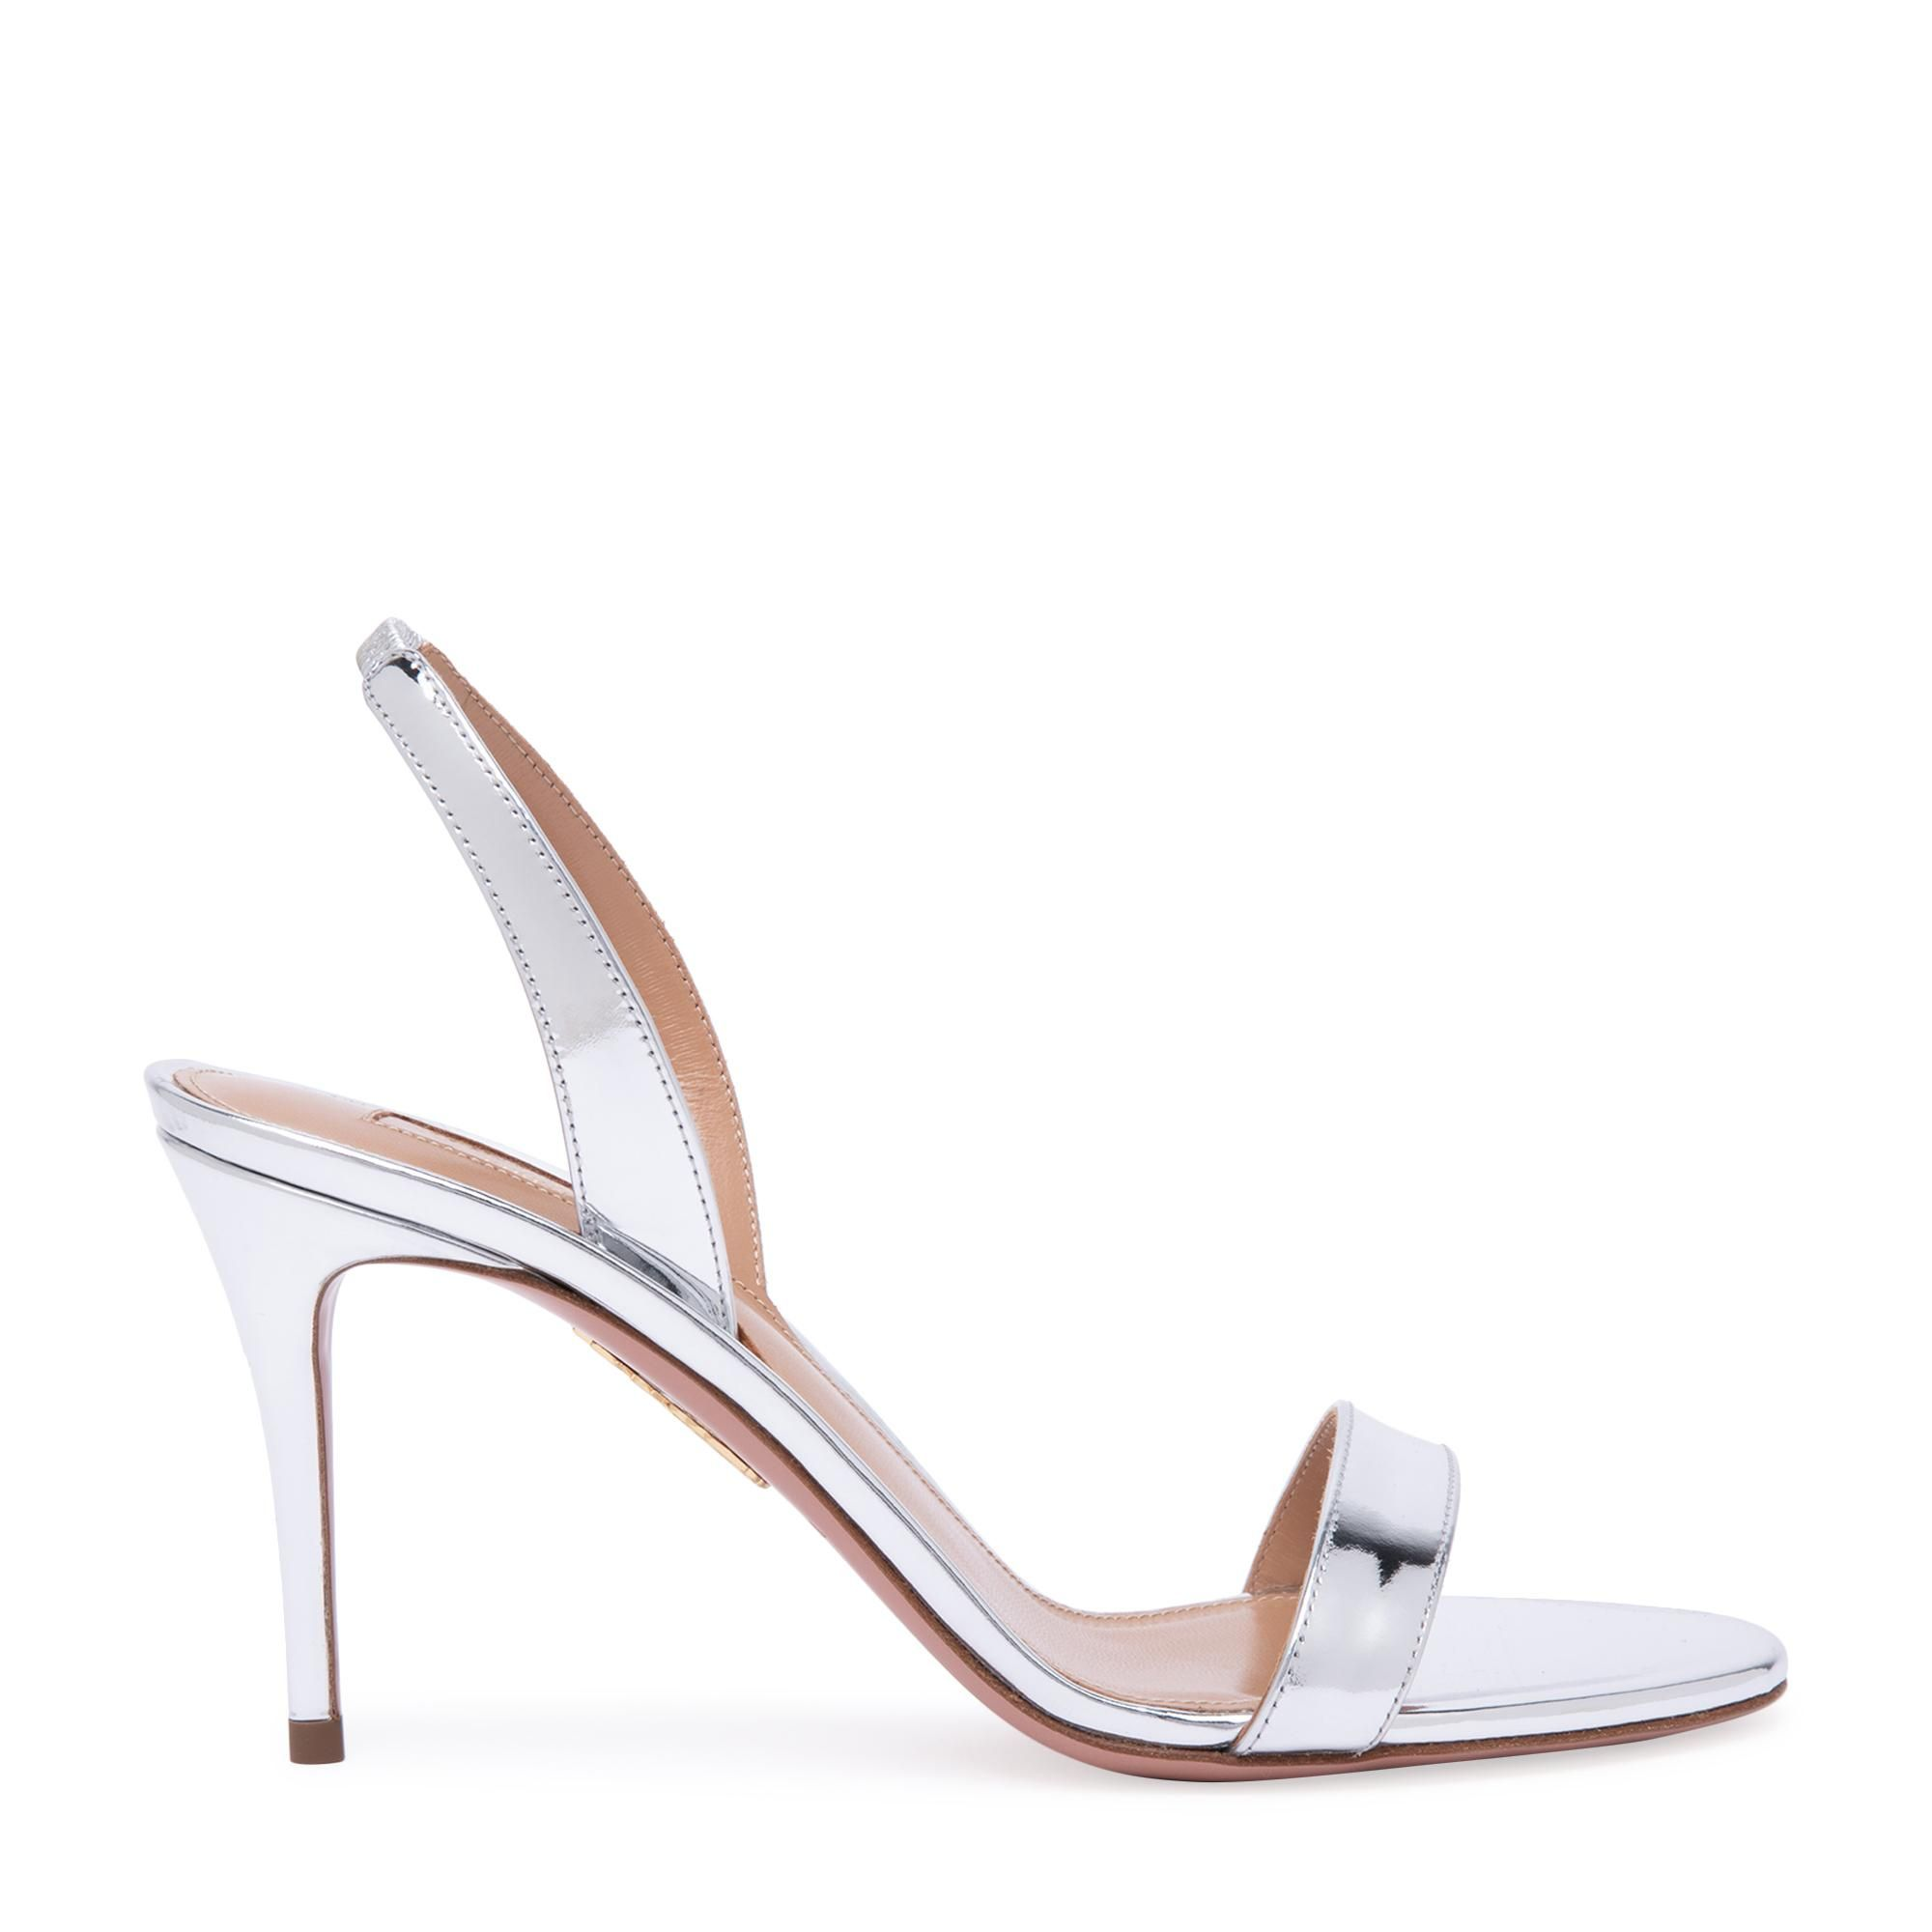 So Nude sandals